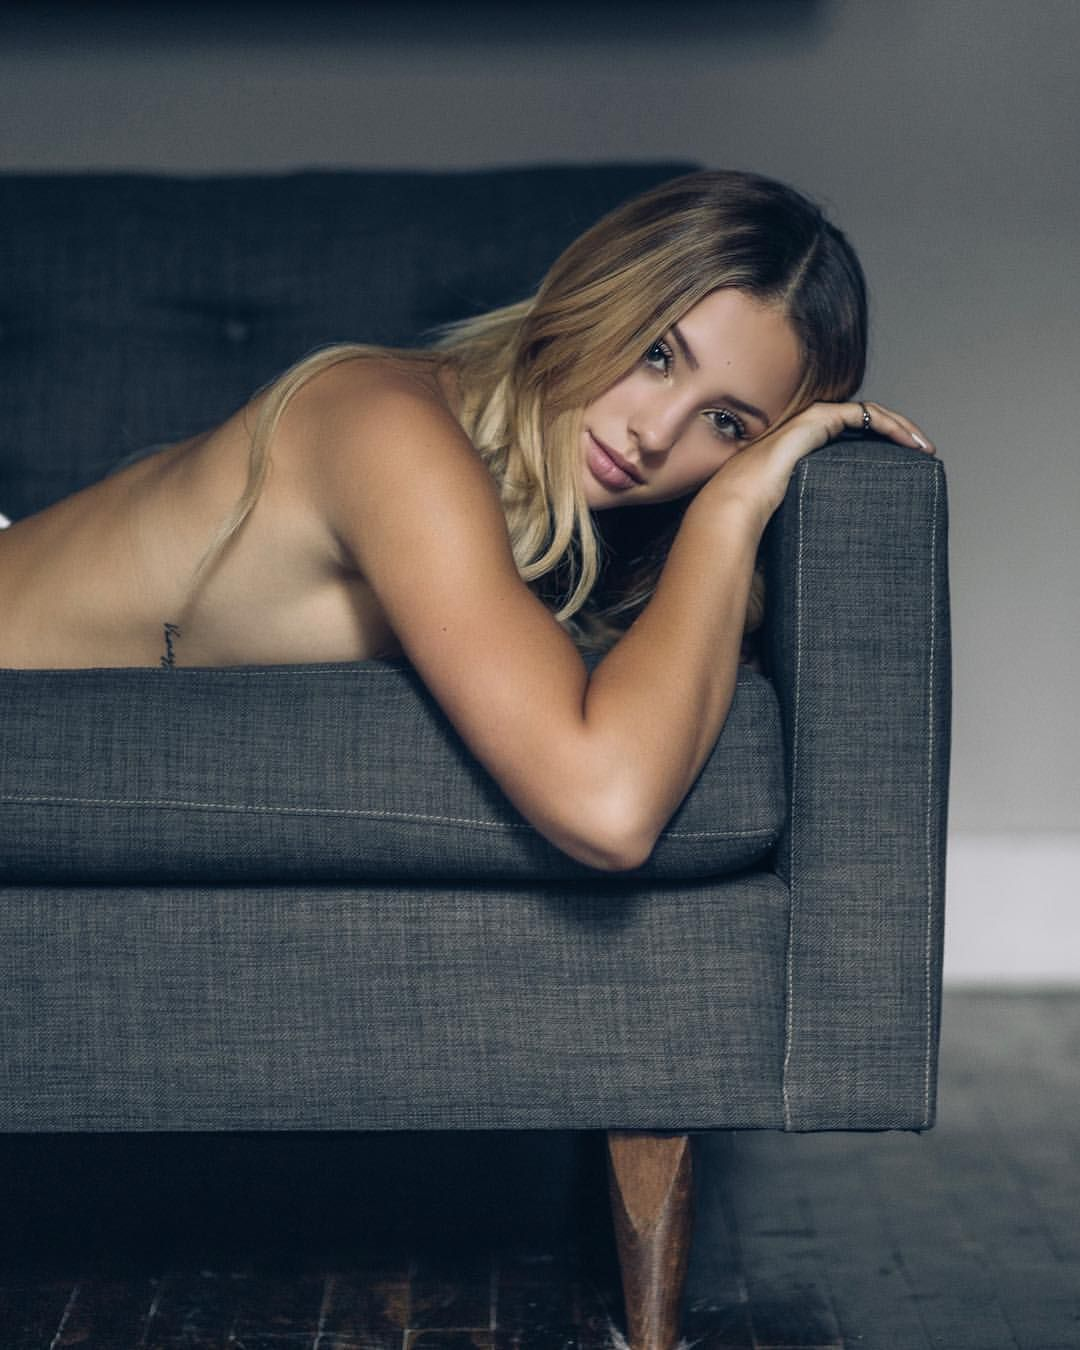 Hacked Charly Jordan naked (99 images), Selfie